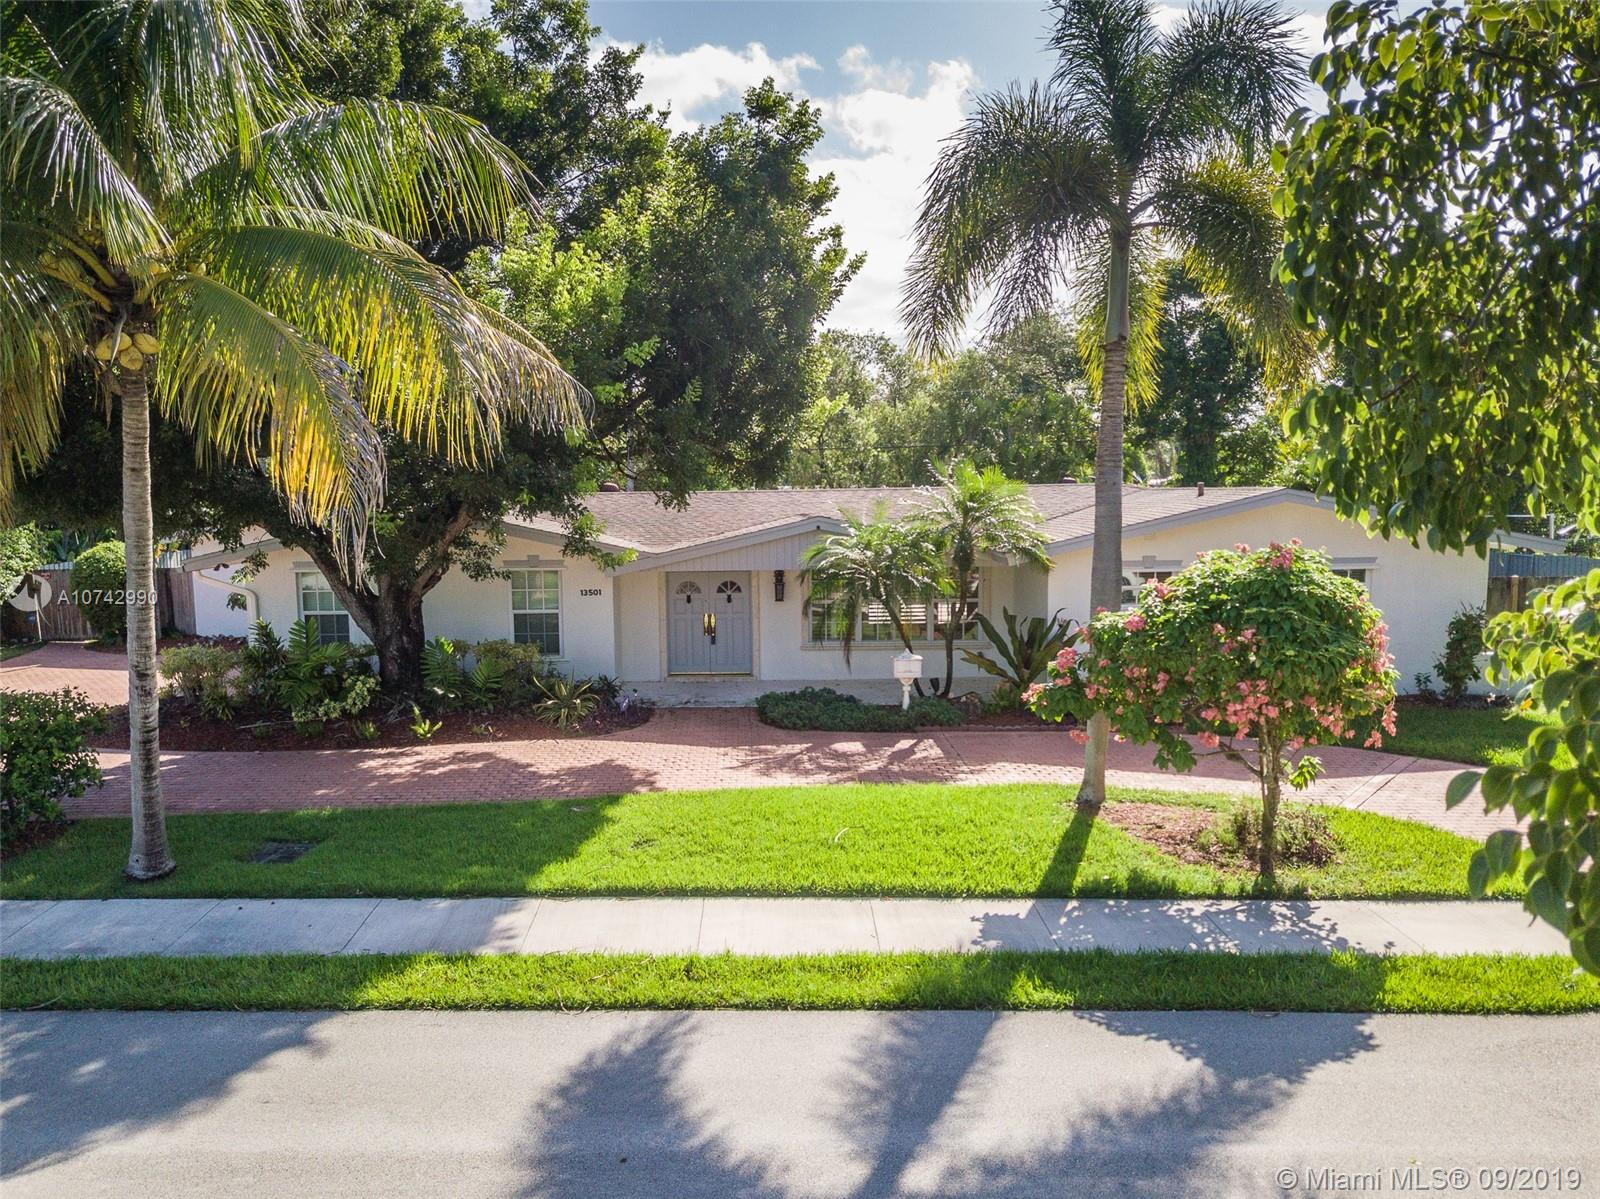 13501 SW 74th Ave, Kendall in Miami-dade County County, FL 33156 Home for Sale